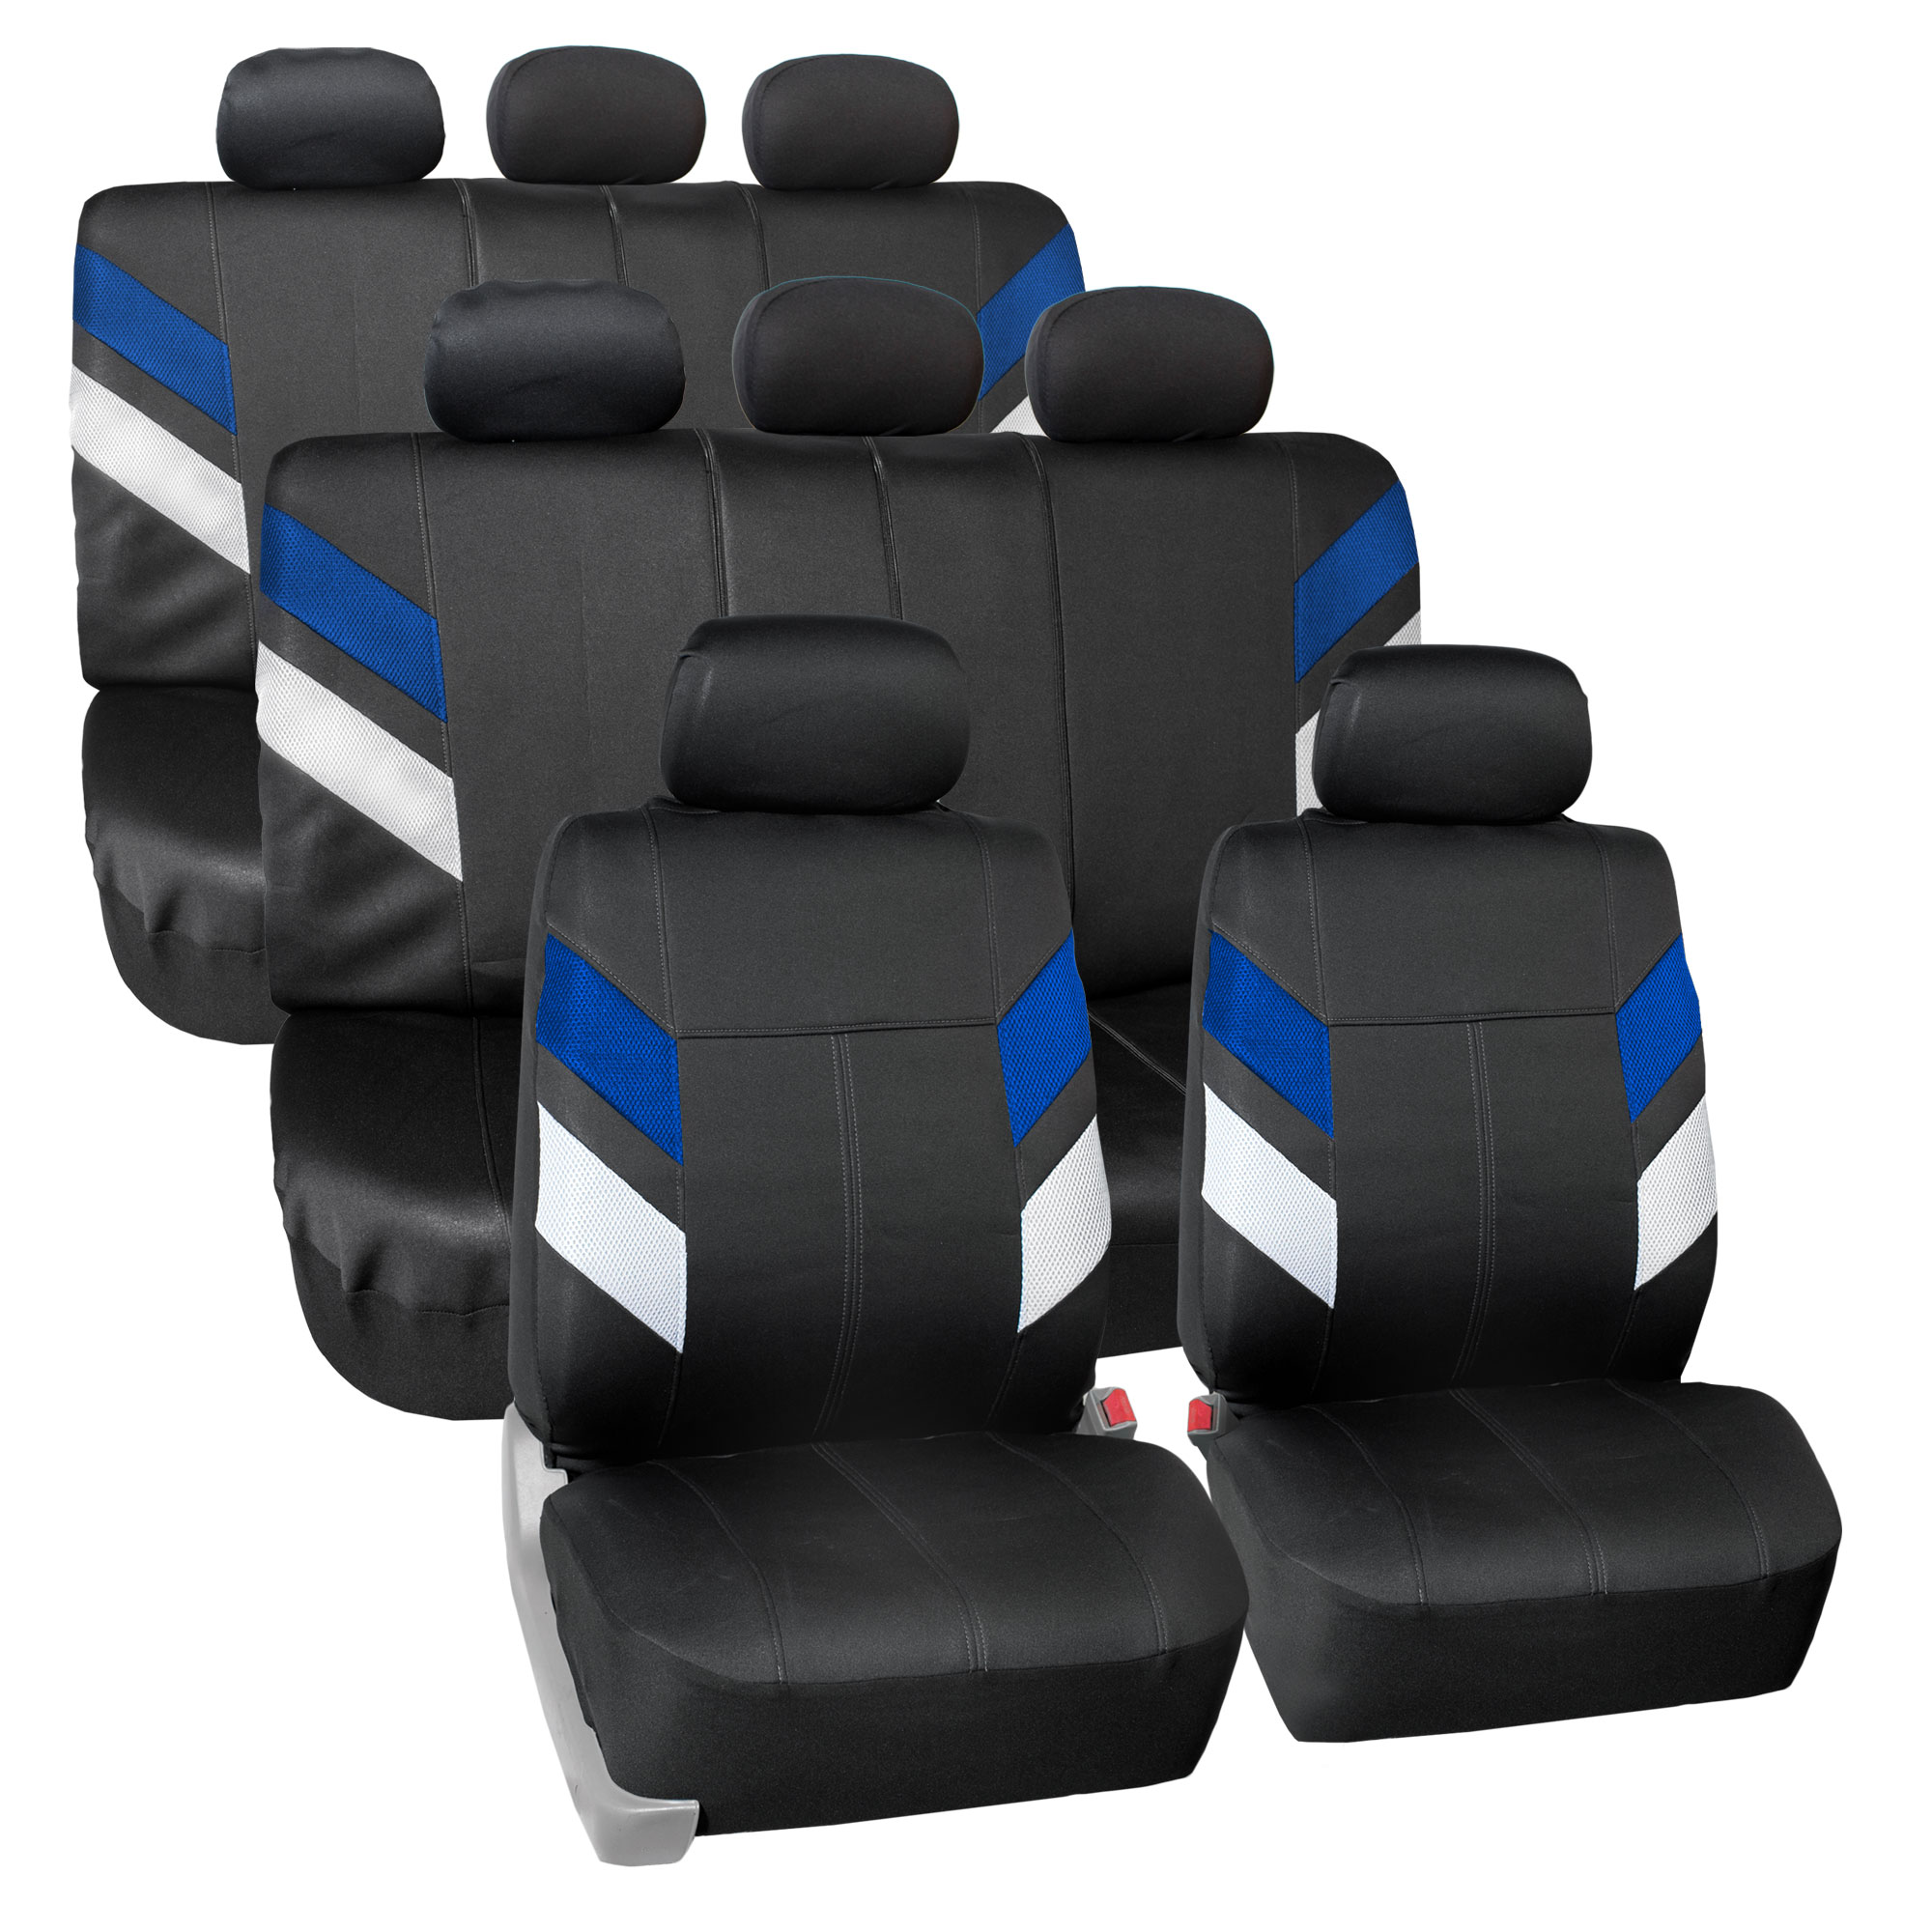 FH Group, 3 Row Neroprene Auto Car SUV Van Seat Covers, Complete Full Set for 8 Seaters, 12 Colors